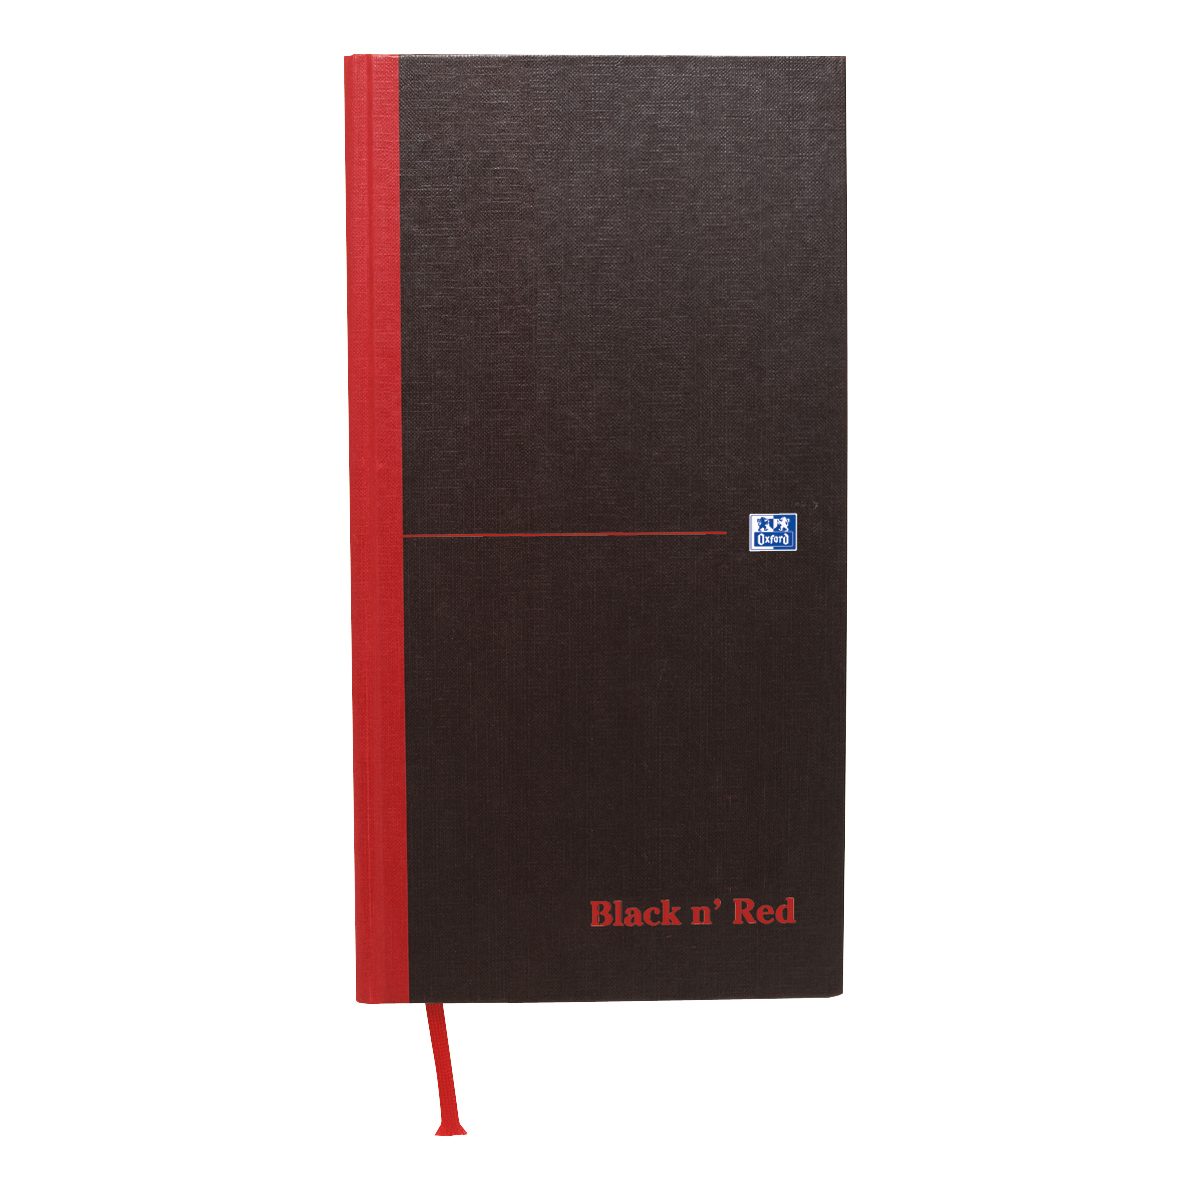 Black n Red Notebook Casebound 90gsm Ruled 192pp 140x297mm Ref 100080528 [Pack 5]